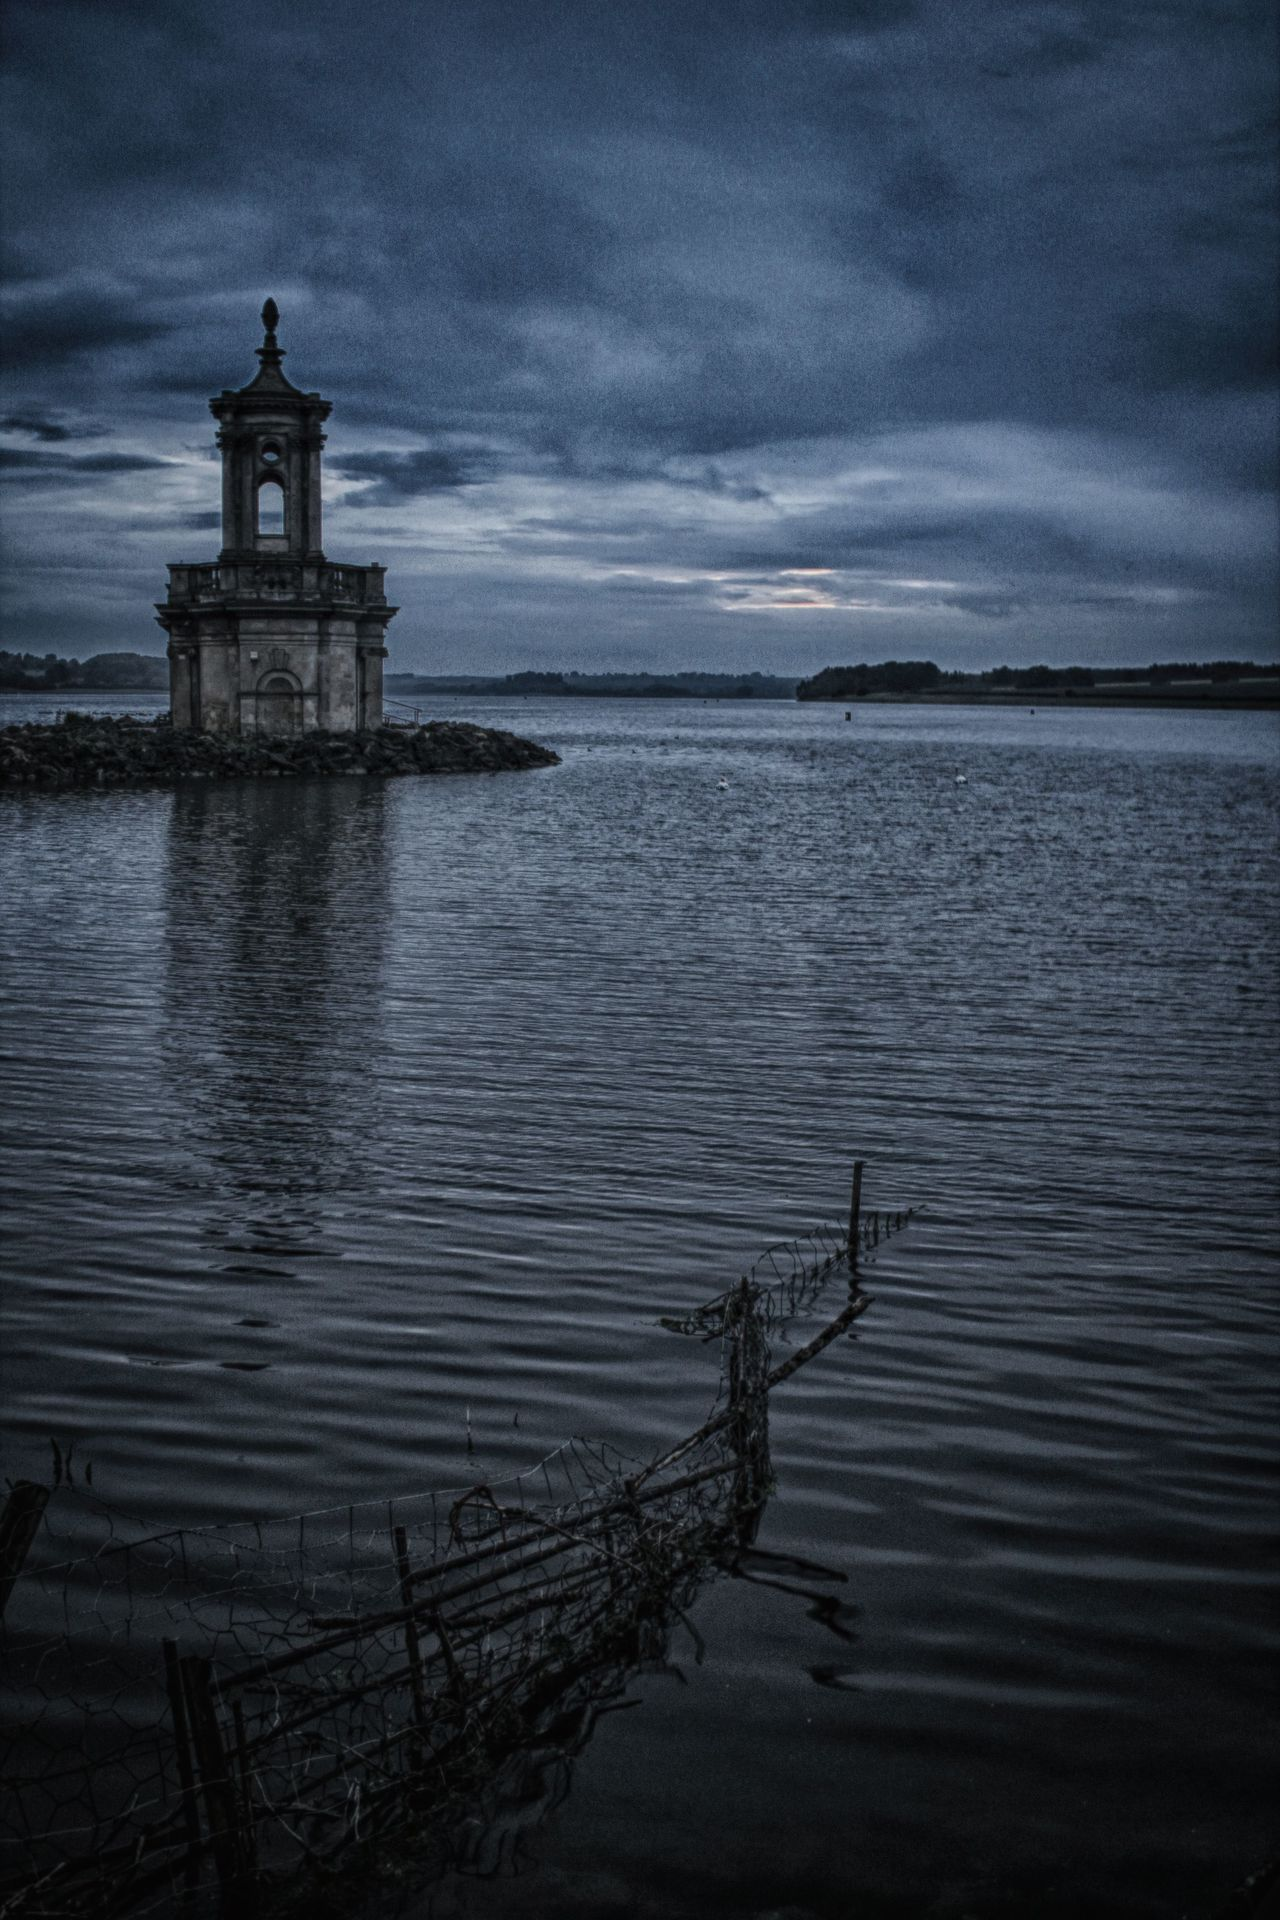 Lone church on water edge at dusk with a fence leading into the lake. Beauty In Nature Church Cloud - Sky Fence In A Lake Lake At Night Lakeshore Nature No People Non-urban Scene Outdoors Sky Water Water Edge Water Reflection